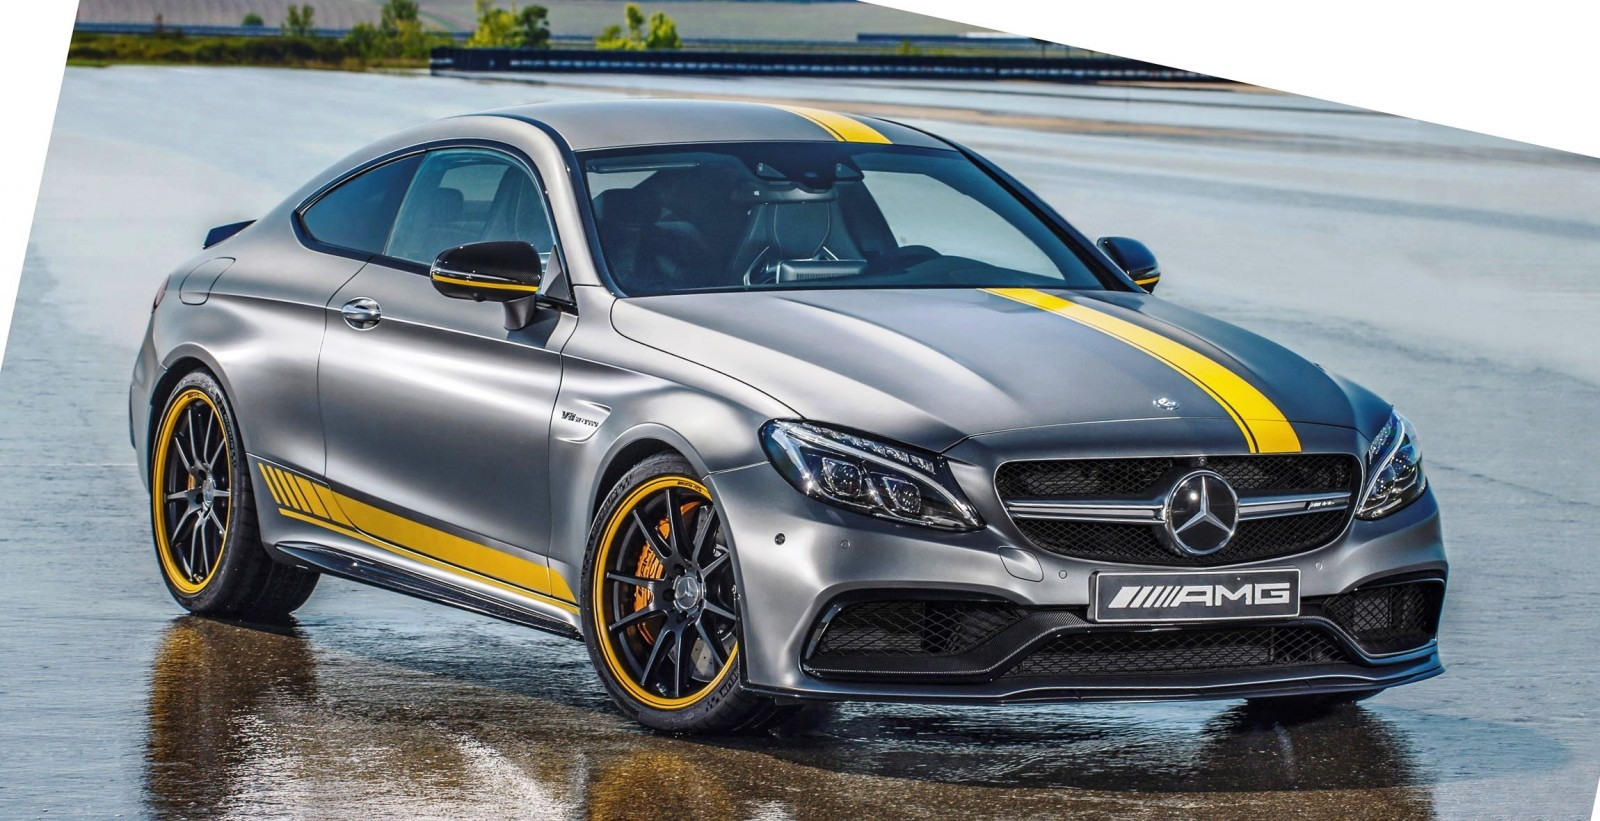 2017 mercedes amg c63 coup edition 1 2016 dtm racecar car revs. Black Bedroom Furniture Sets. Home Design Ideas